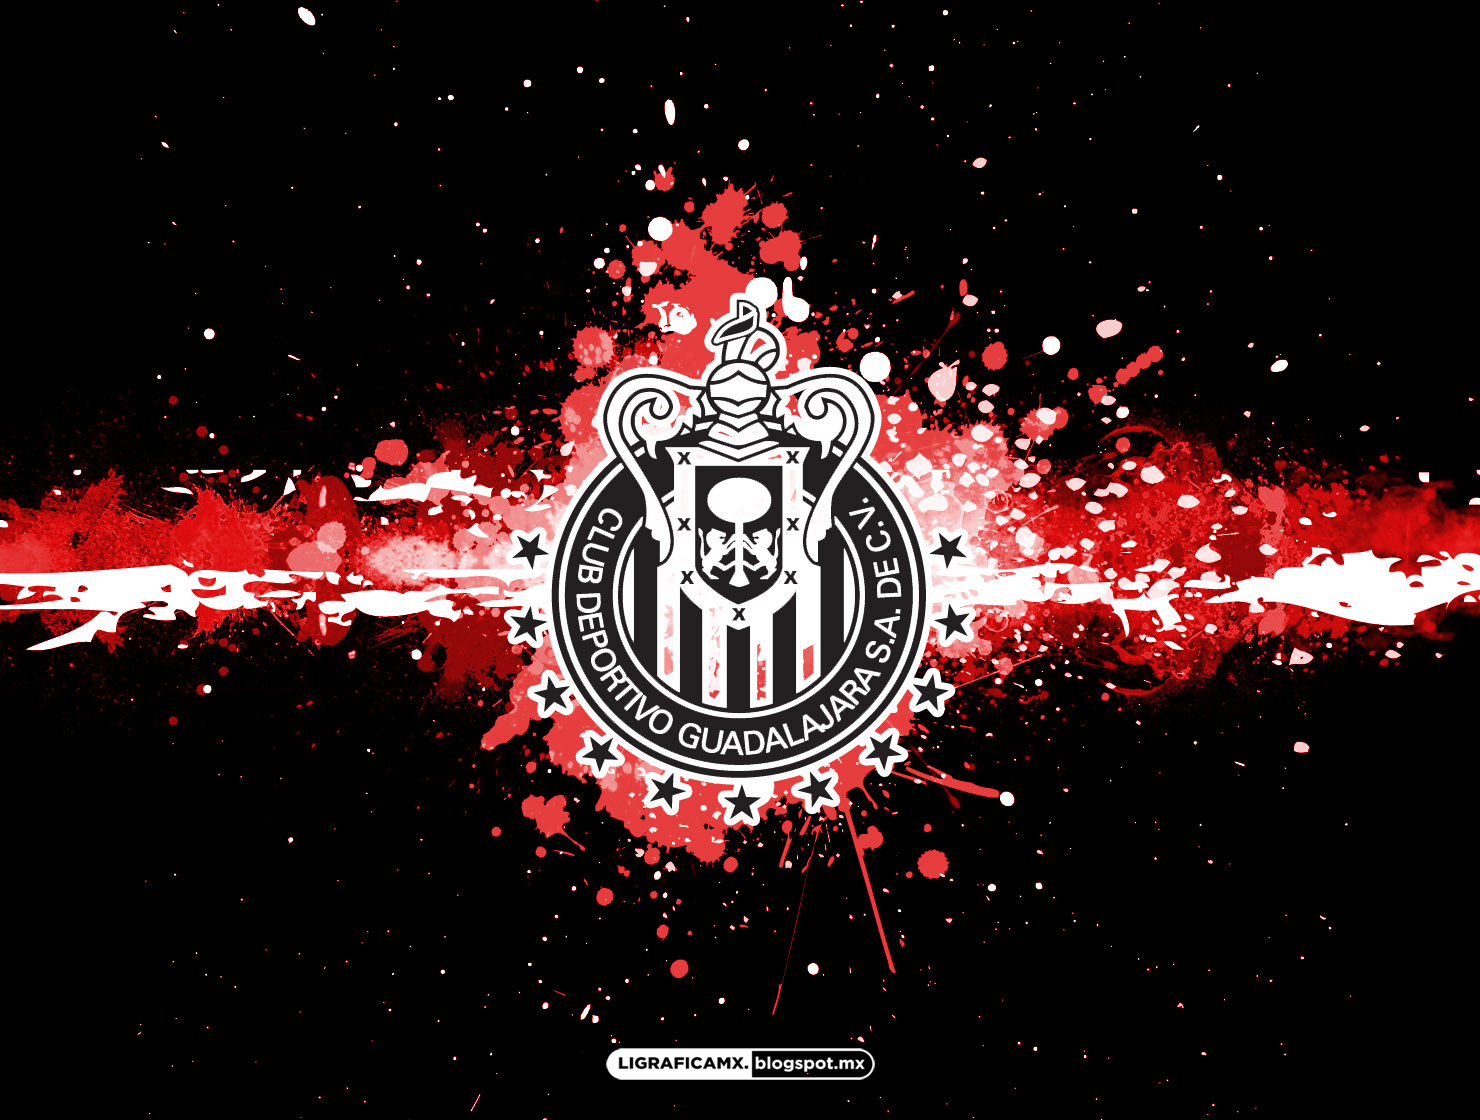 Chivas 2015 wallpaper wallpapersafari view 0 voltagebd Images